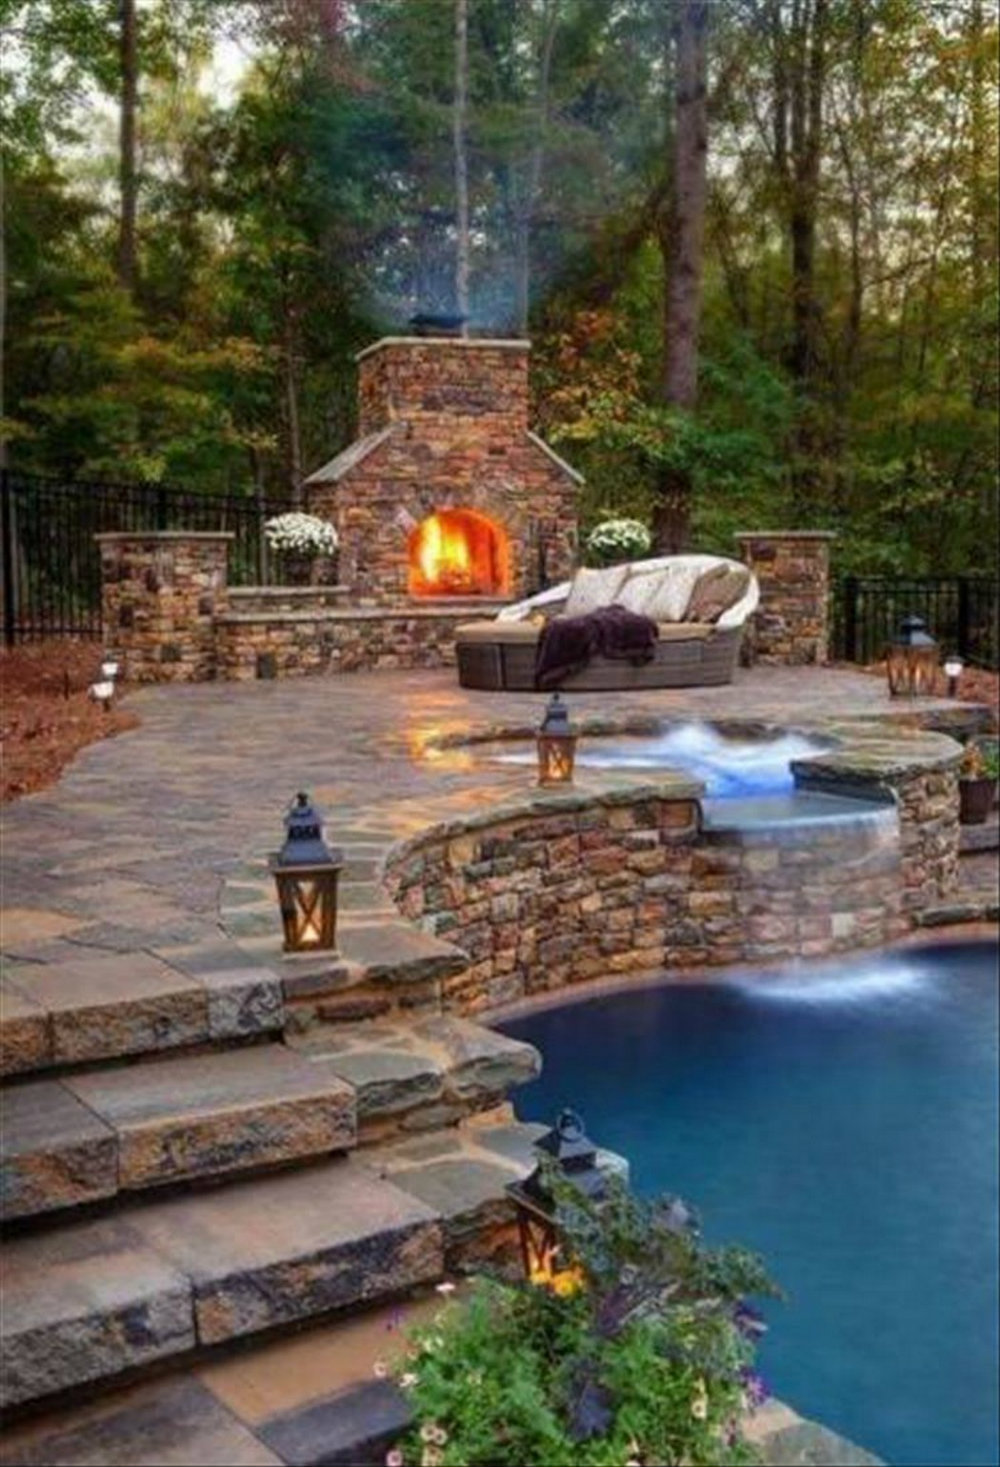 7 Outdoor Luxury Design Ideas 06 outdoor luxury design 7 Outdoor Luxury Design Ideas 7 Outdoor Luxury Design Ideas 06